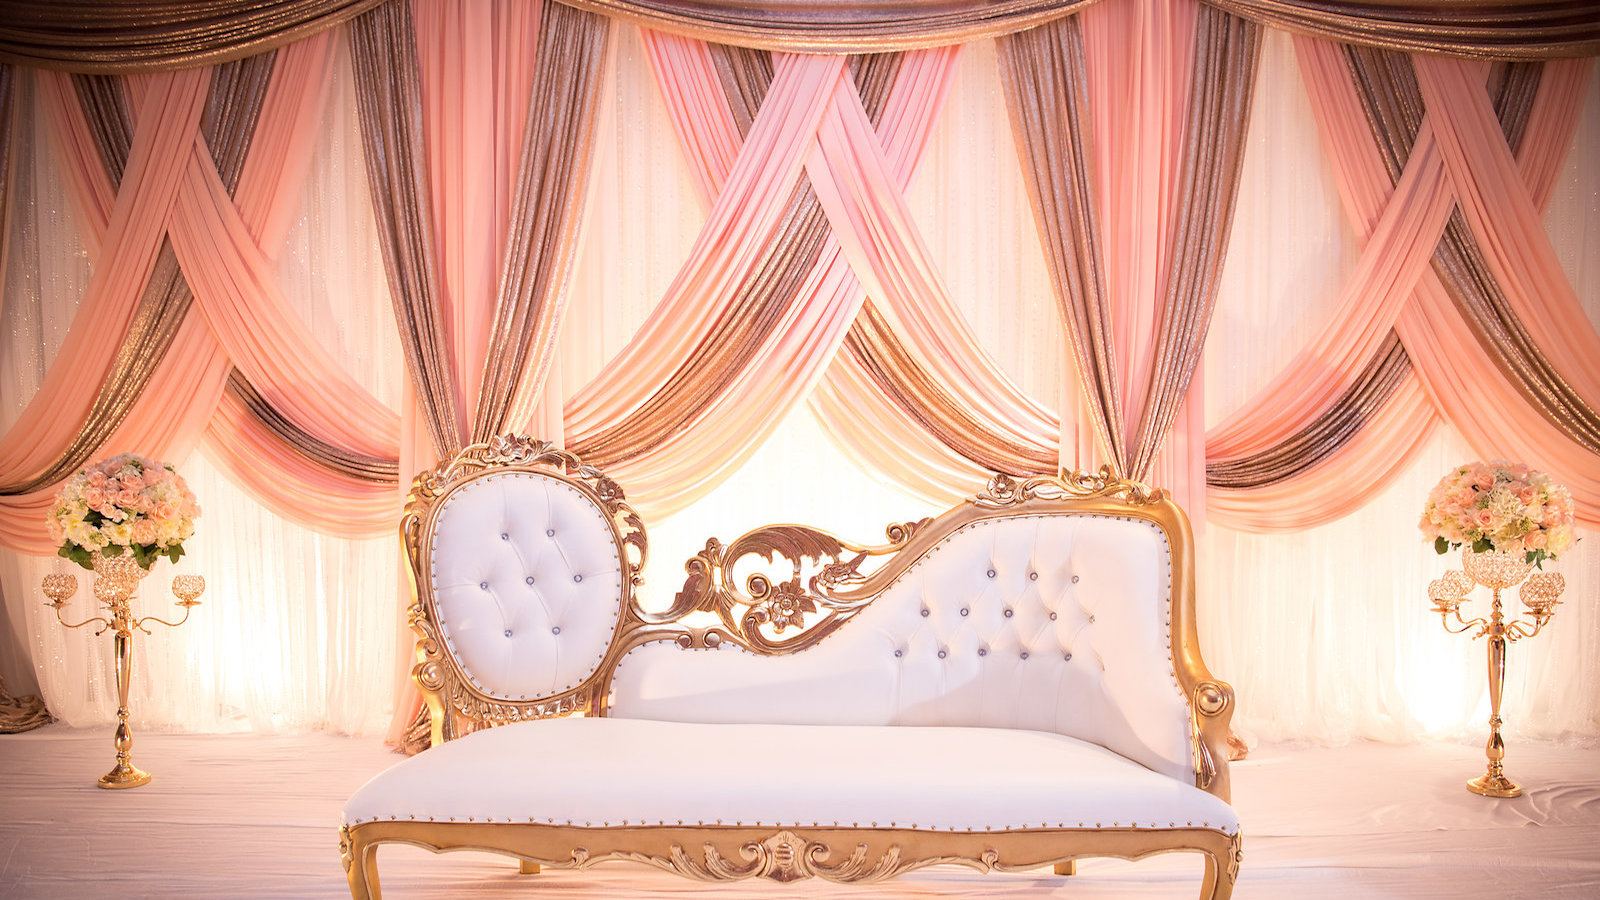 Alpha Events And Decor Wedding Decorations In Dallas